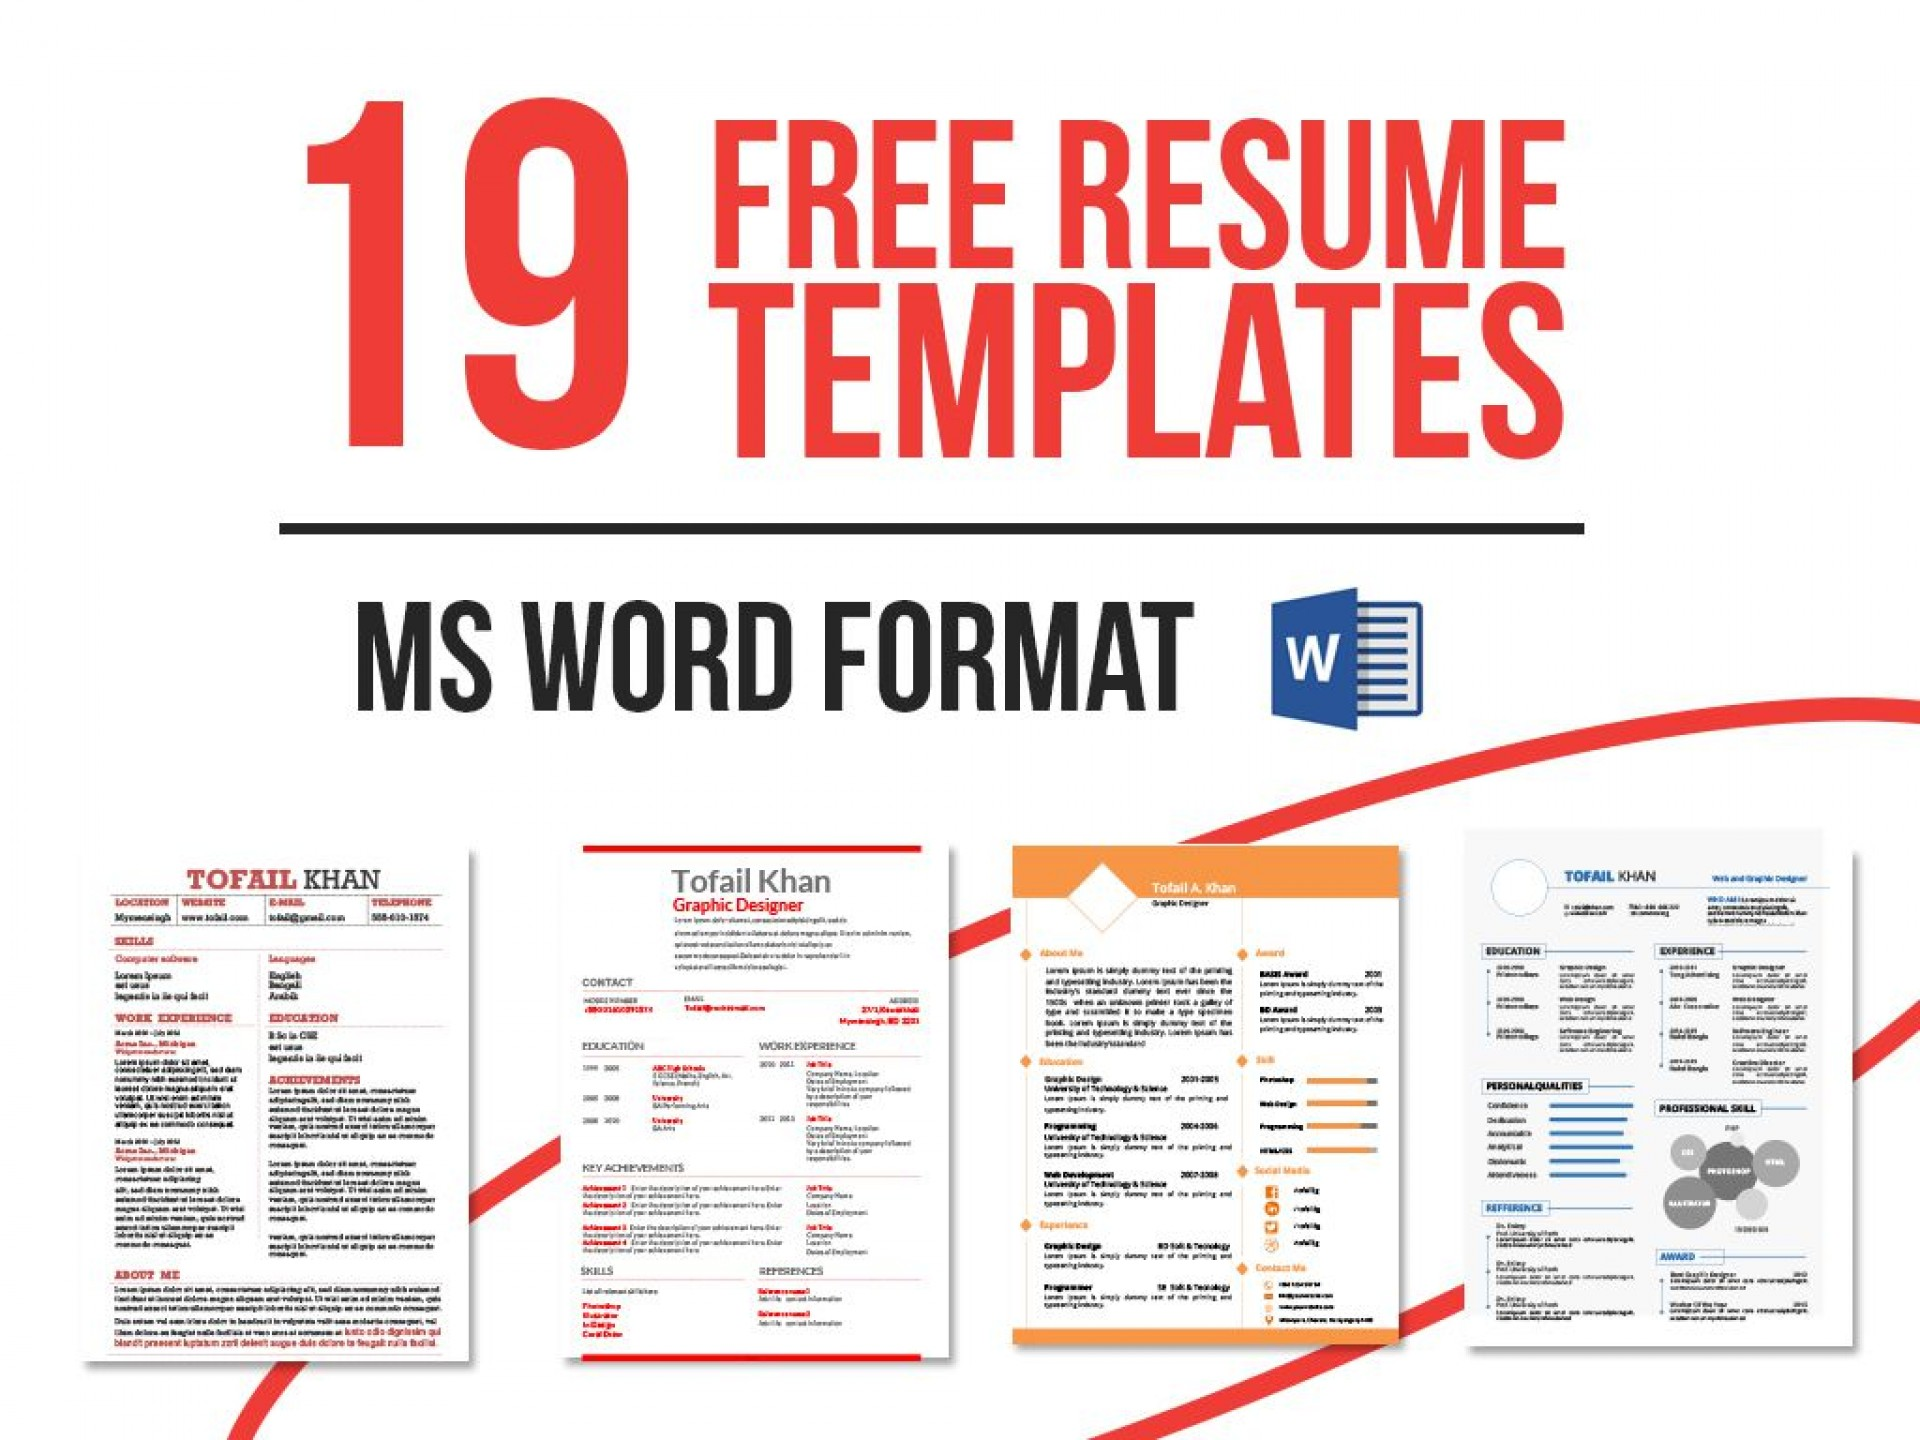 003 Formidable Resume Template M Word Free Highest Clarity  Modern Microsoft Download 2010 Cv With Picture1920